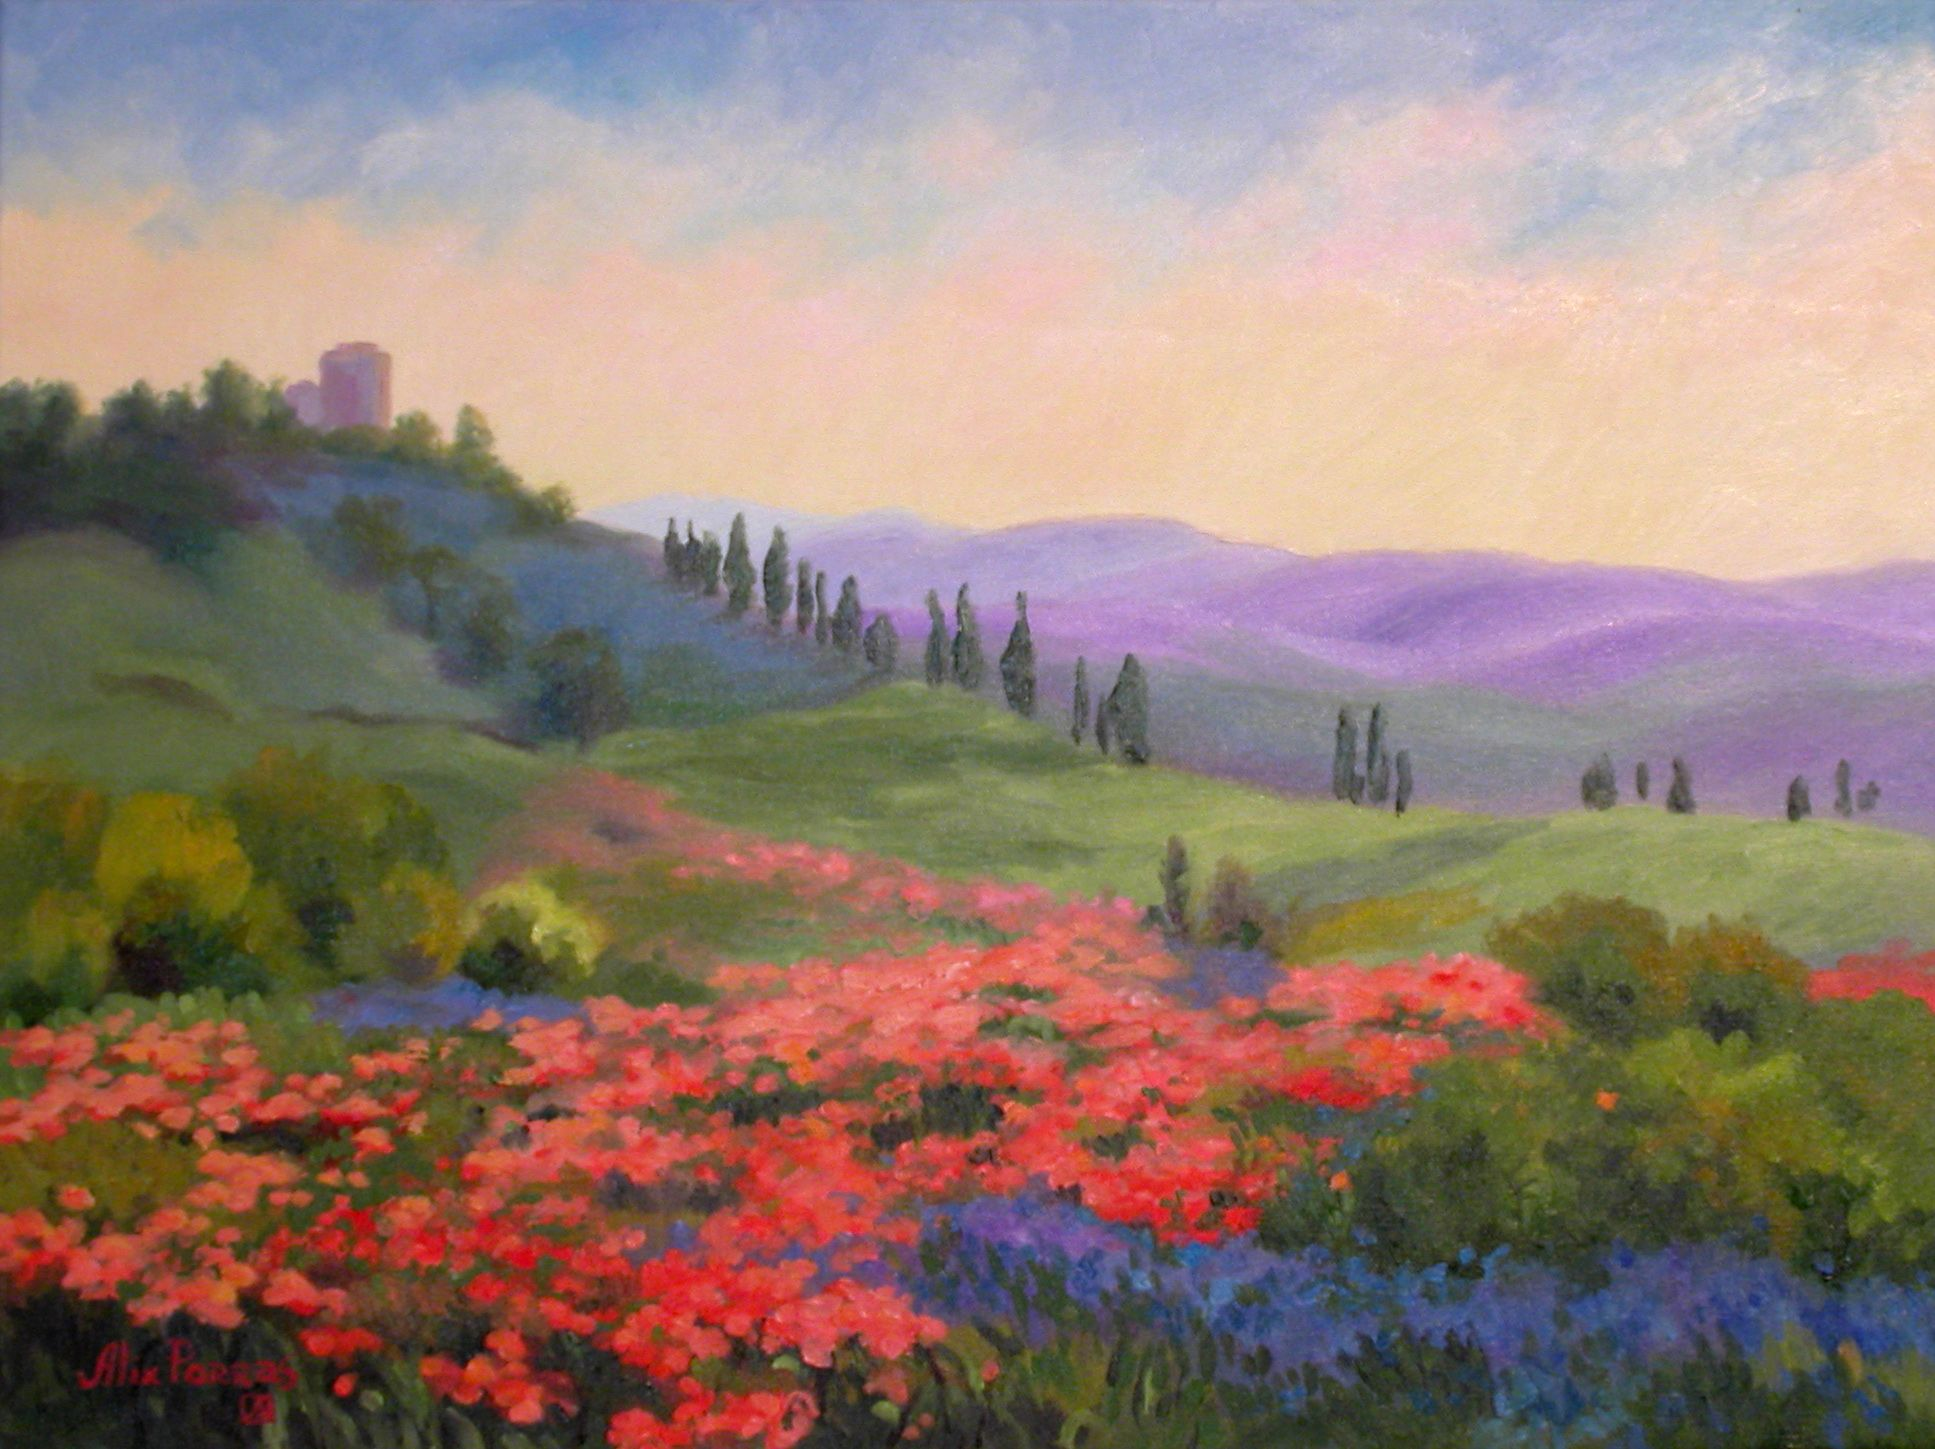 polymer clay landscapes | Tuscan Countryside Landscape | polymer ... for Countryside Landscape Paintings  545xkb